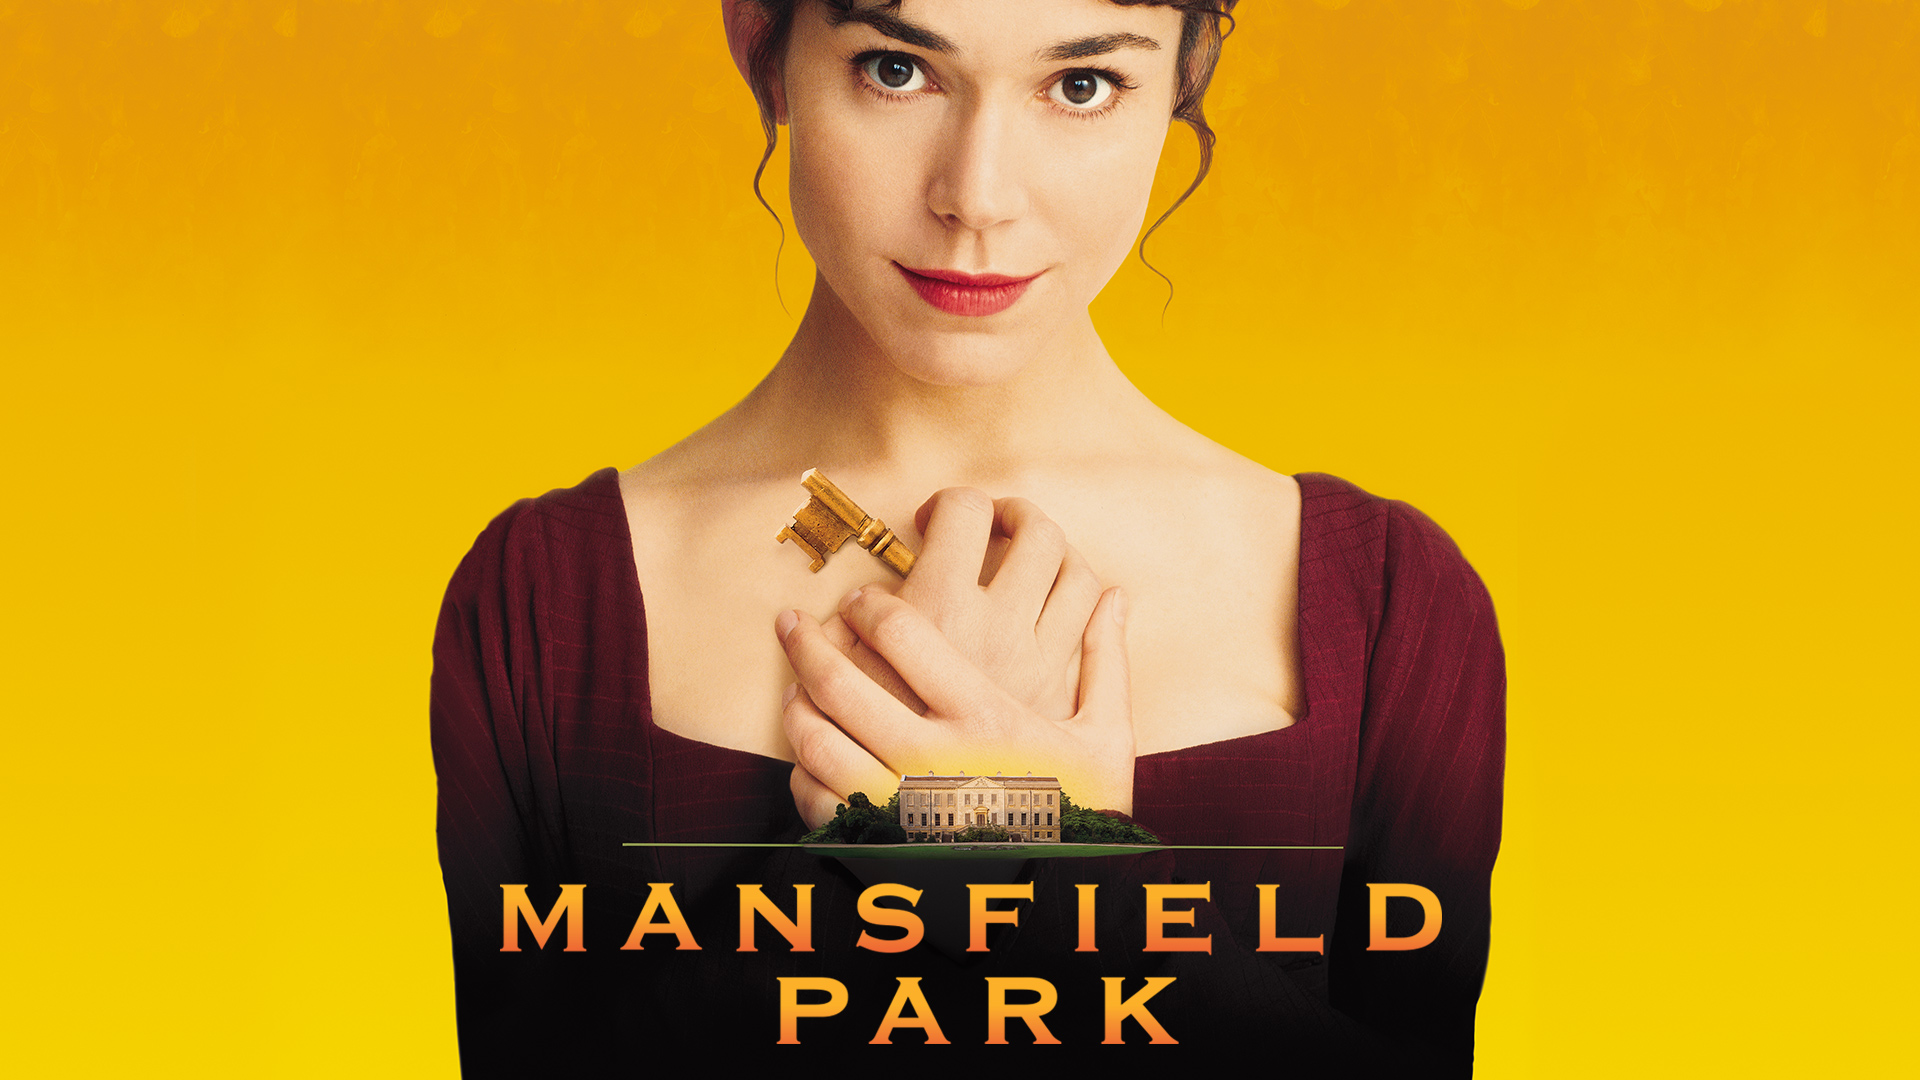 Mansfield Park - Official Trailer (HD)